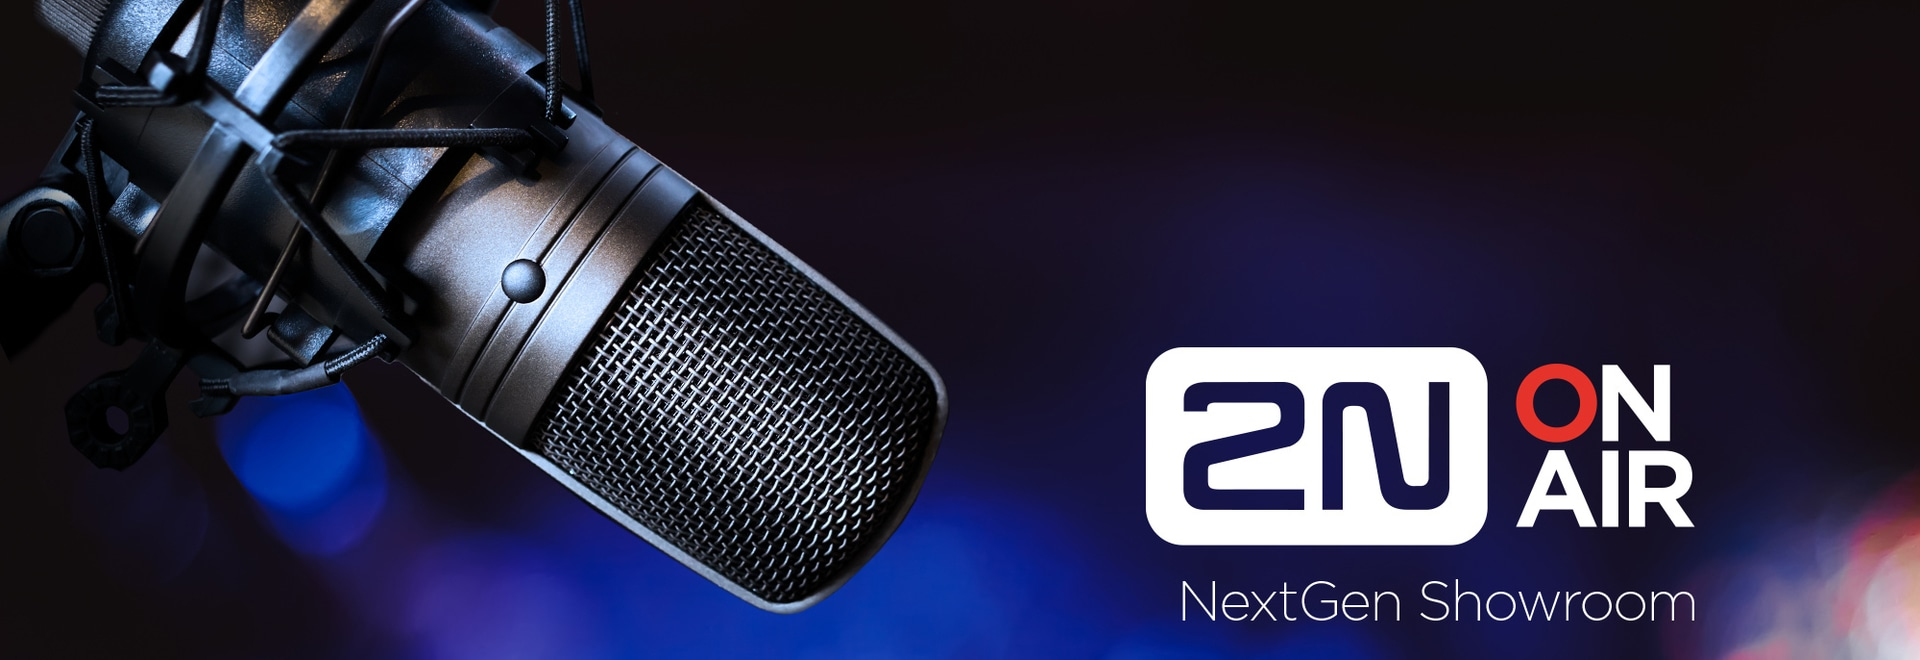 2N On Air starts broadcasting on 11 June. Be involved!